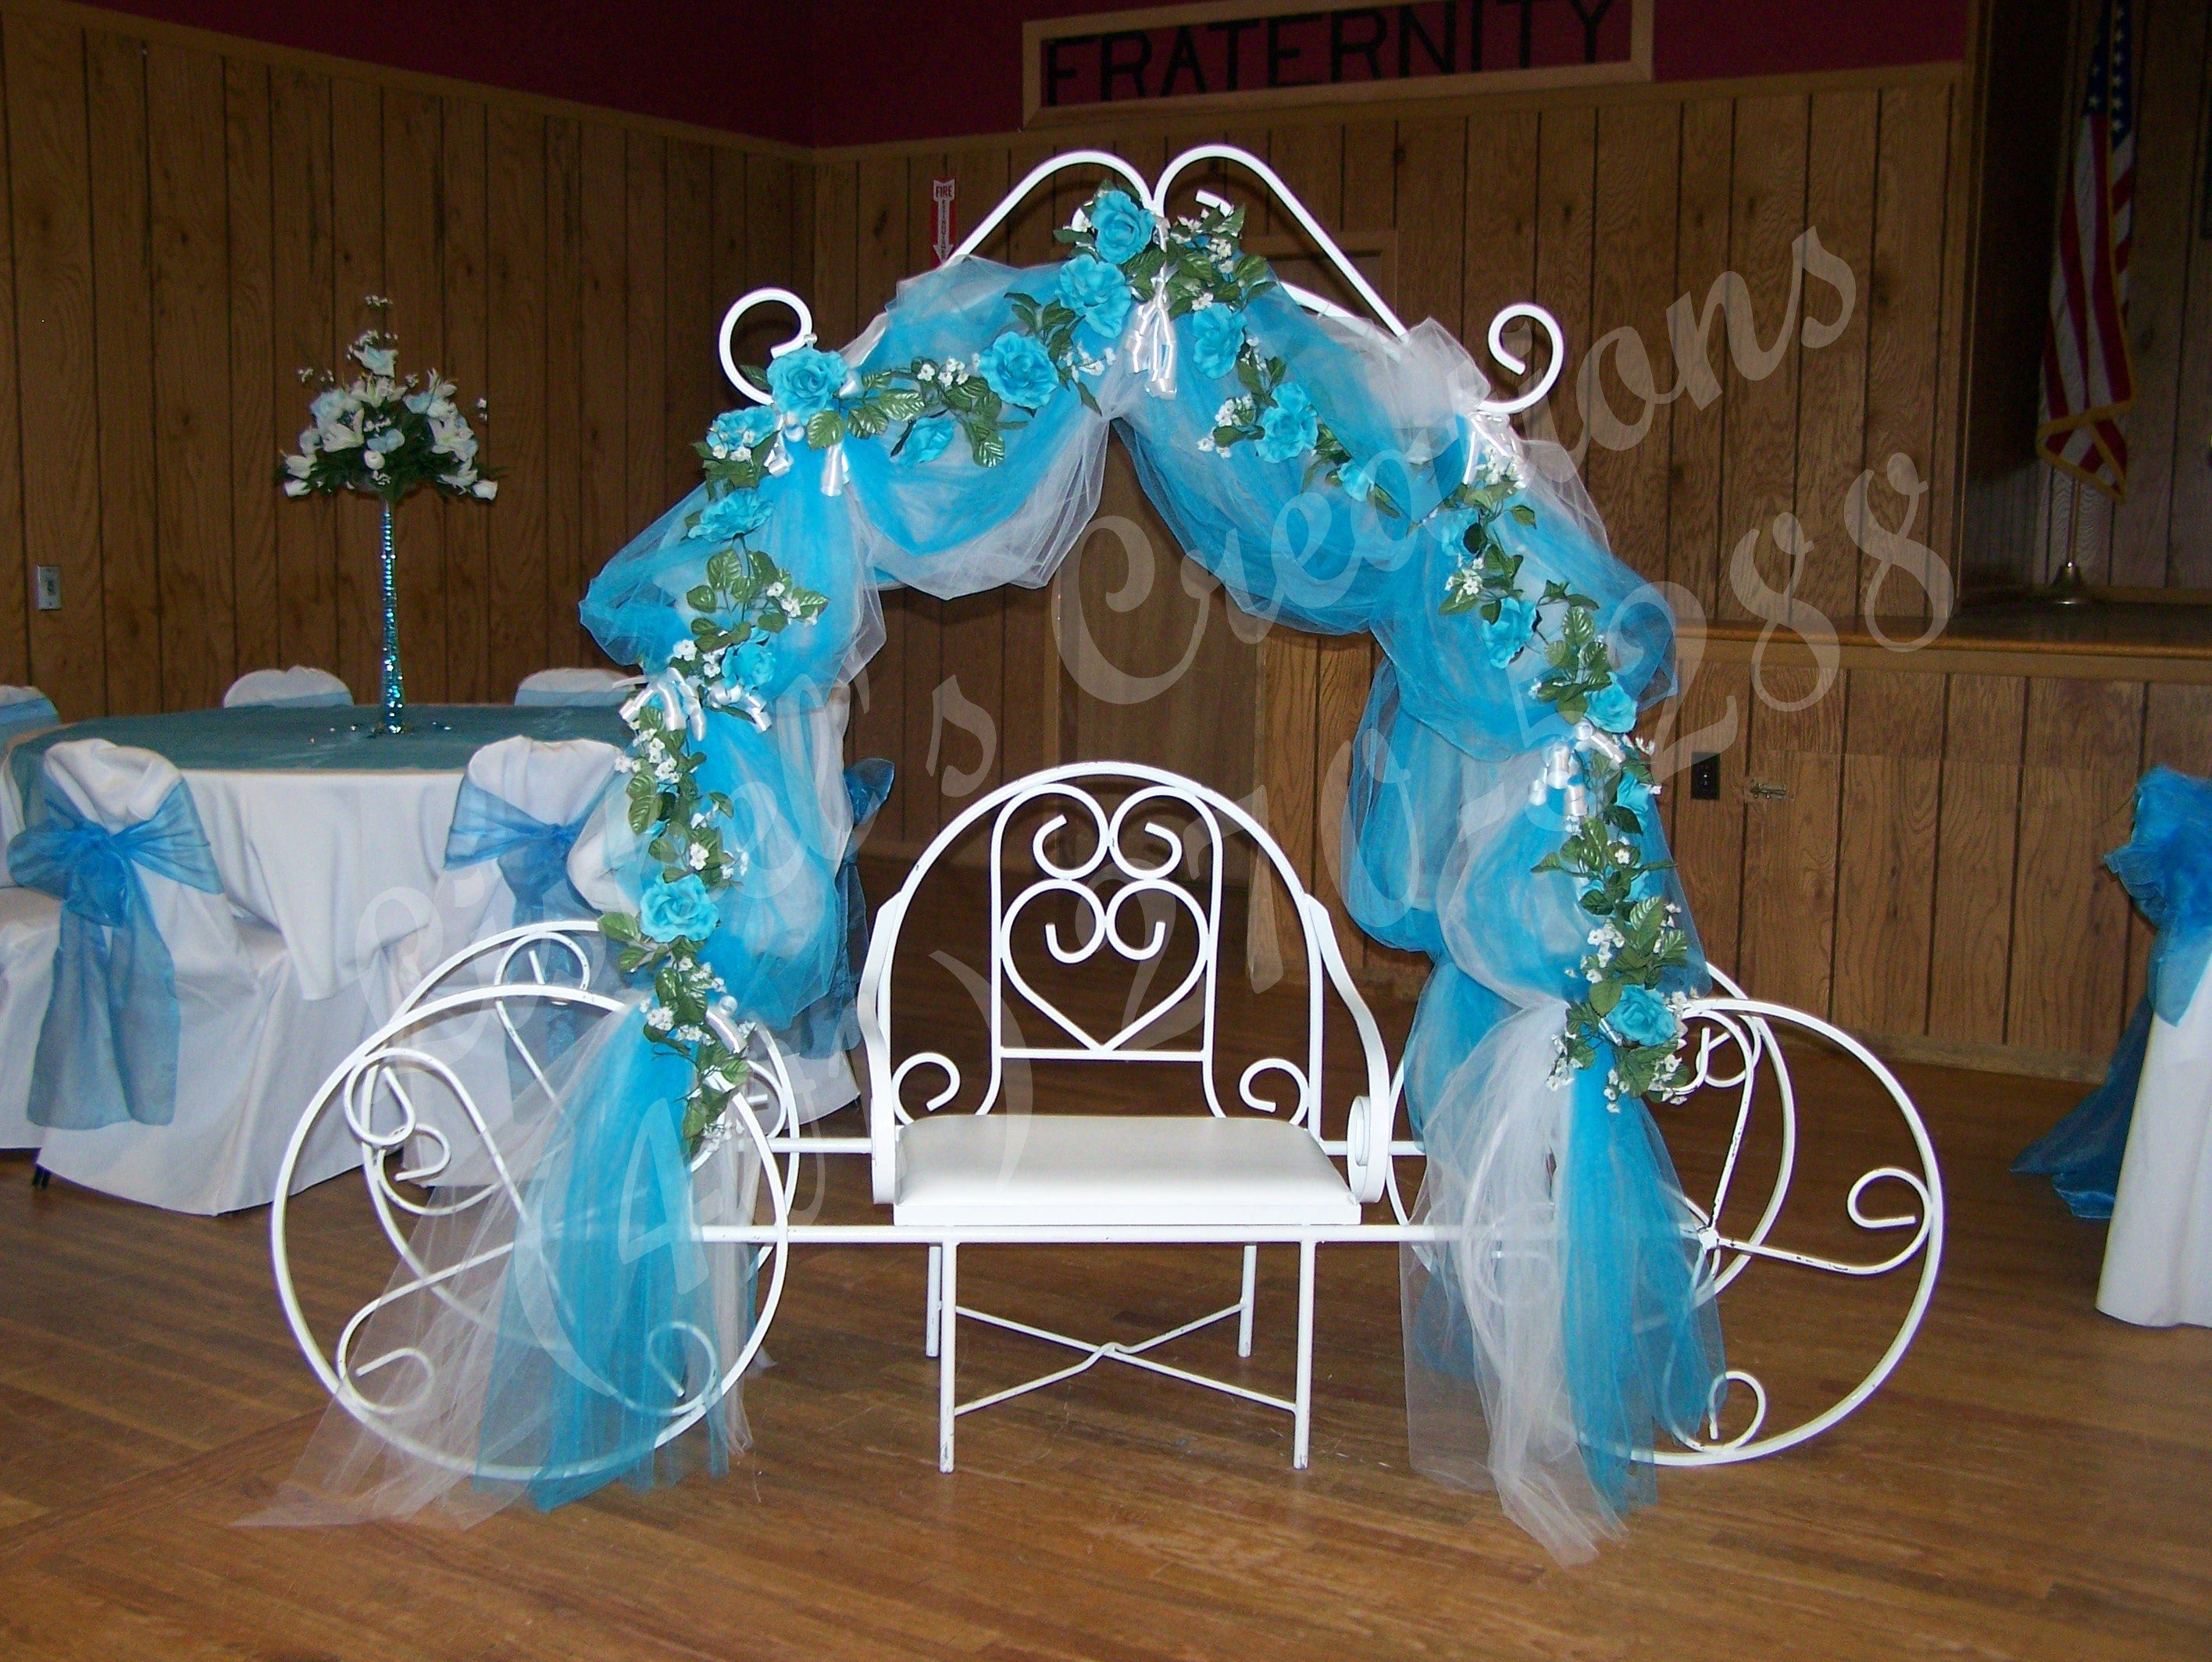 Decoracion para una quinceanera decoracion de for Adornos para quinceanera